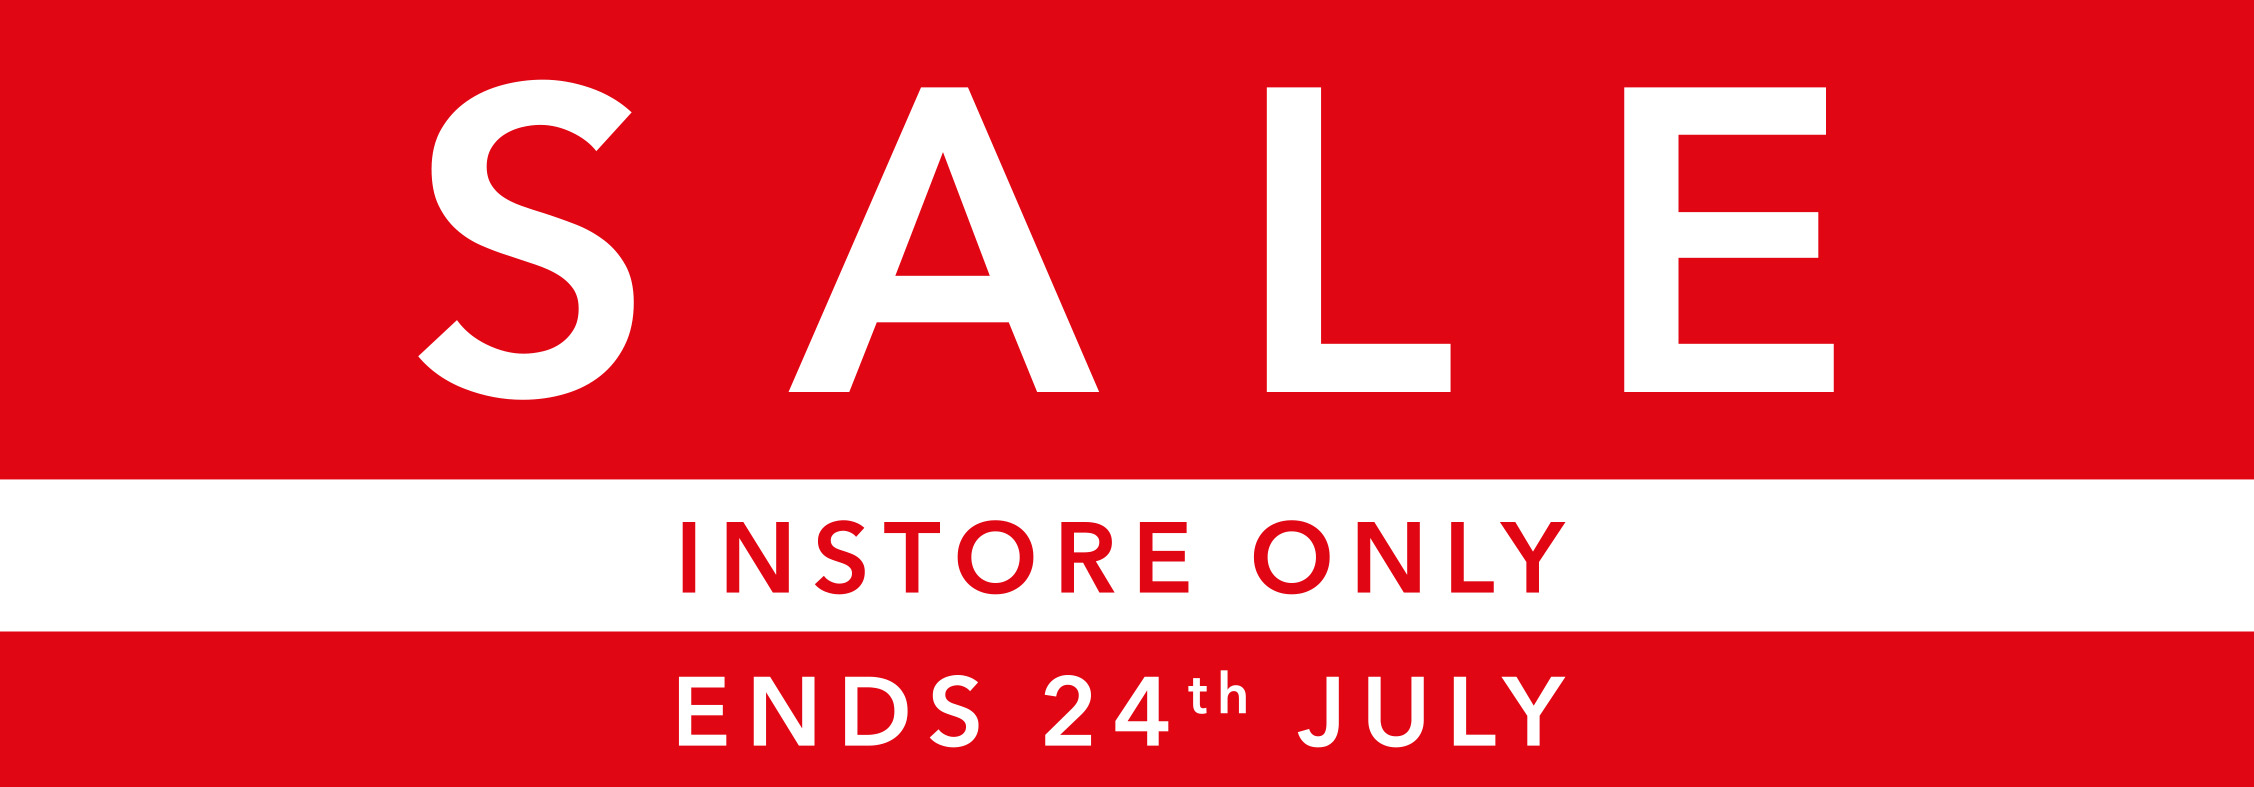 Sale Now On, Instore Only, Ends 24th July